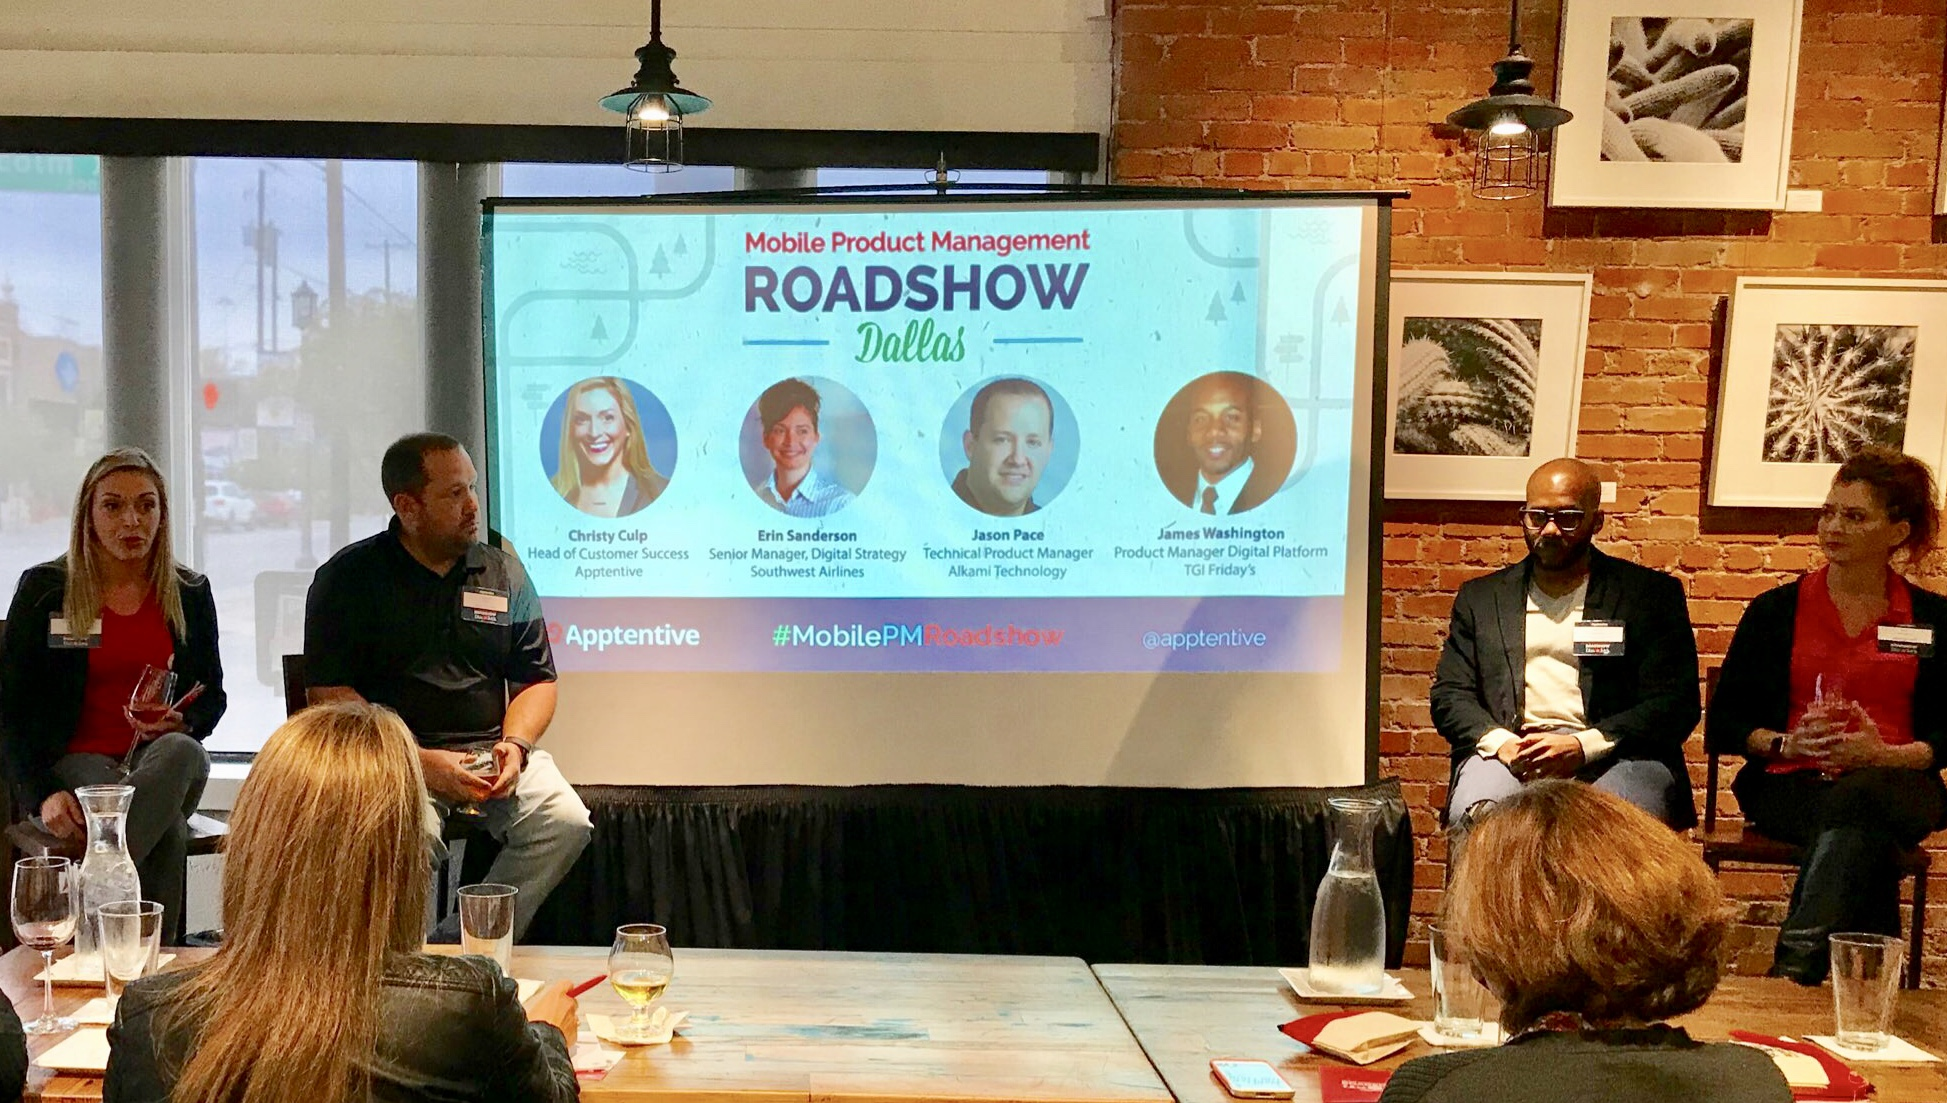 Panelists at Apptentive's Mobile Product Management Roadshow in Dallas